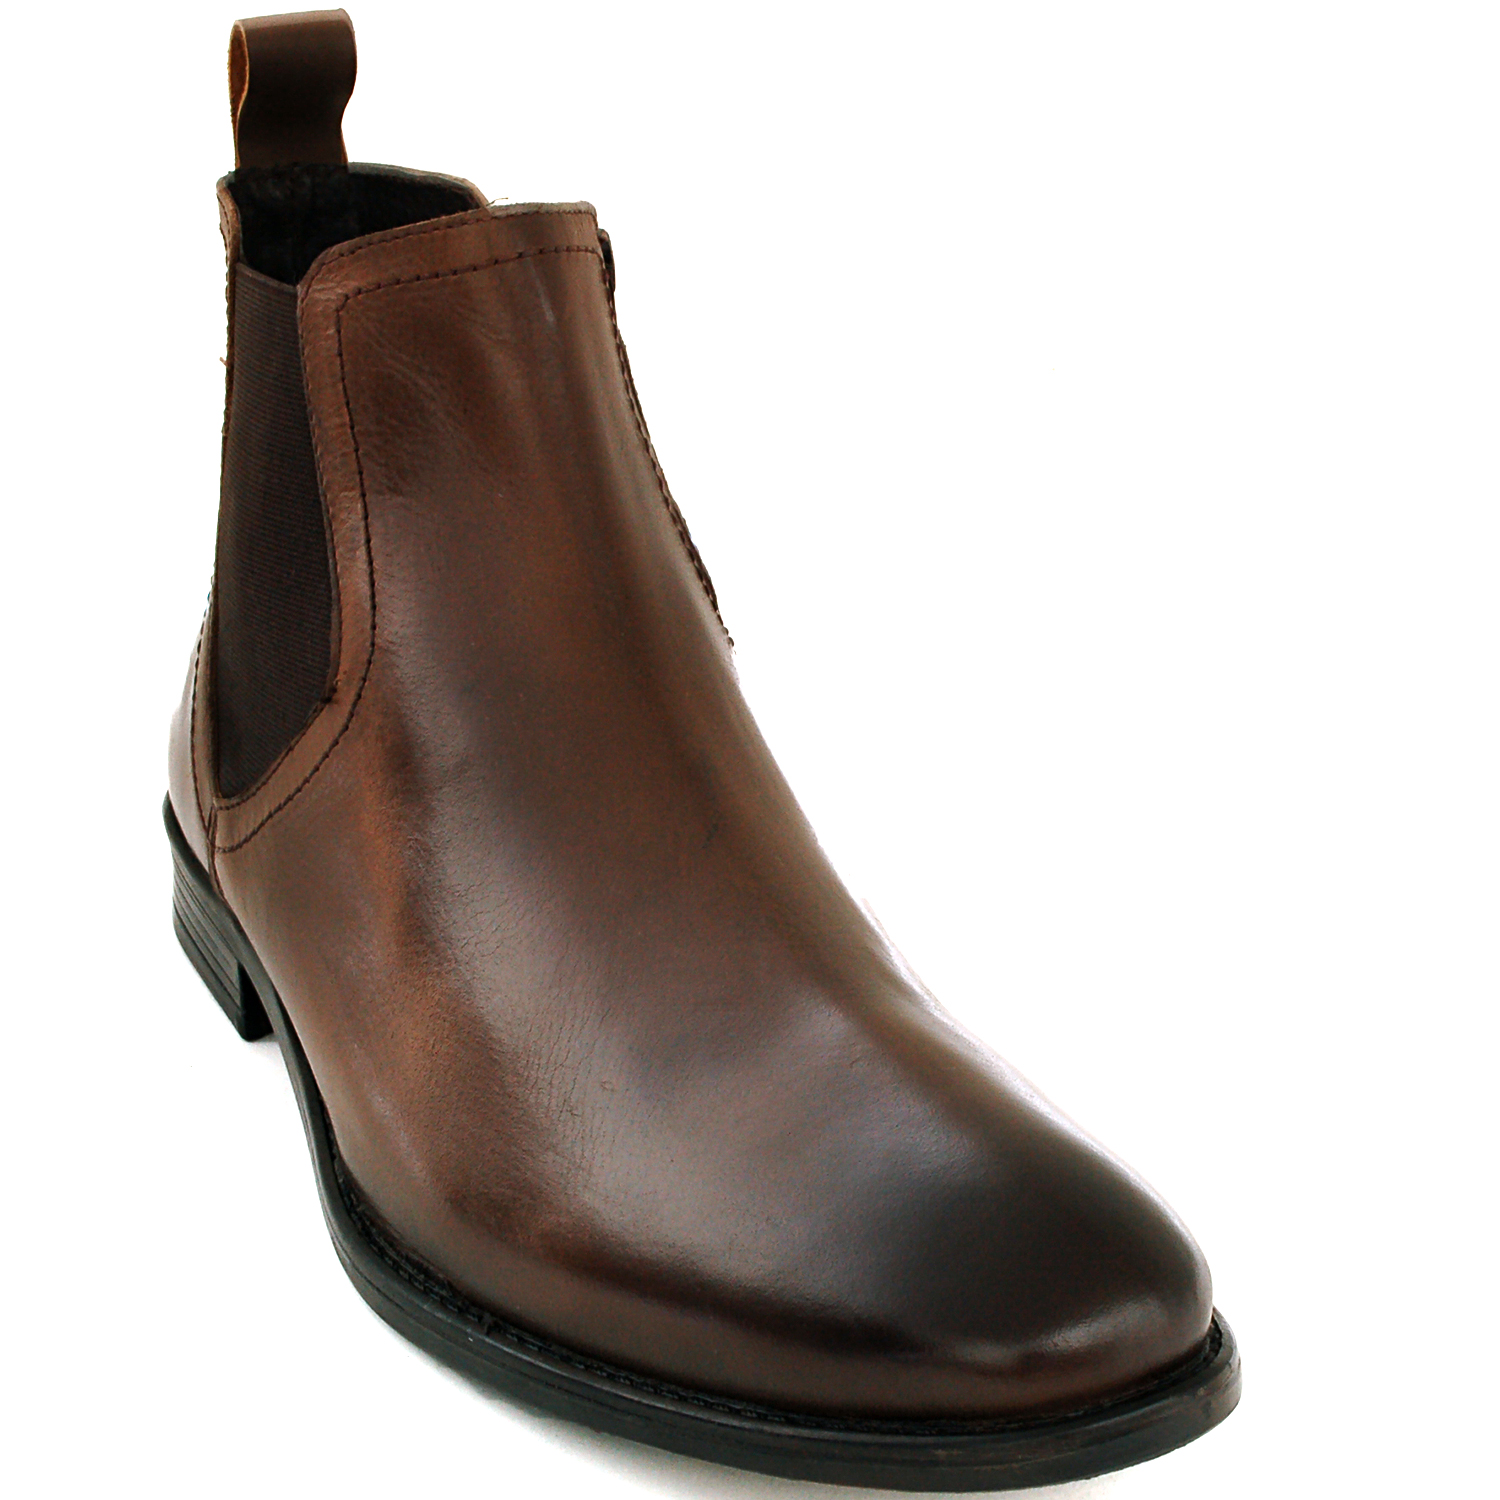 mens chelsea boots slip on ankle loafers leather comfort